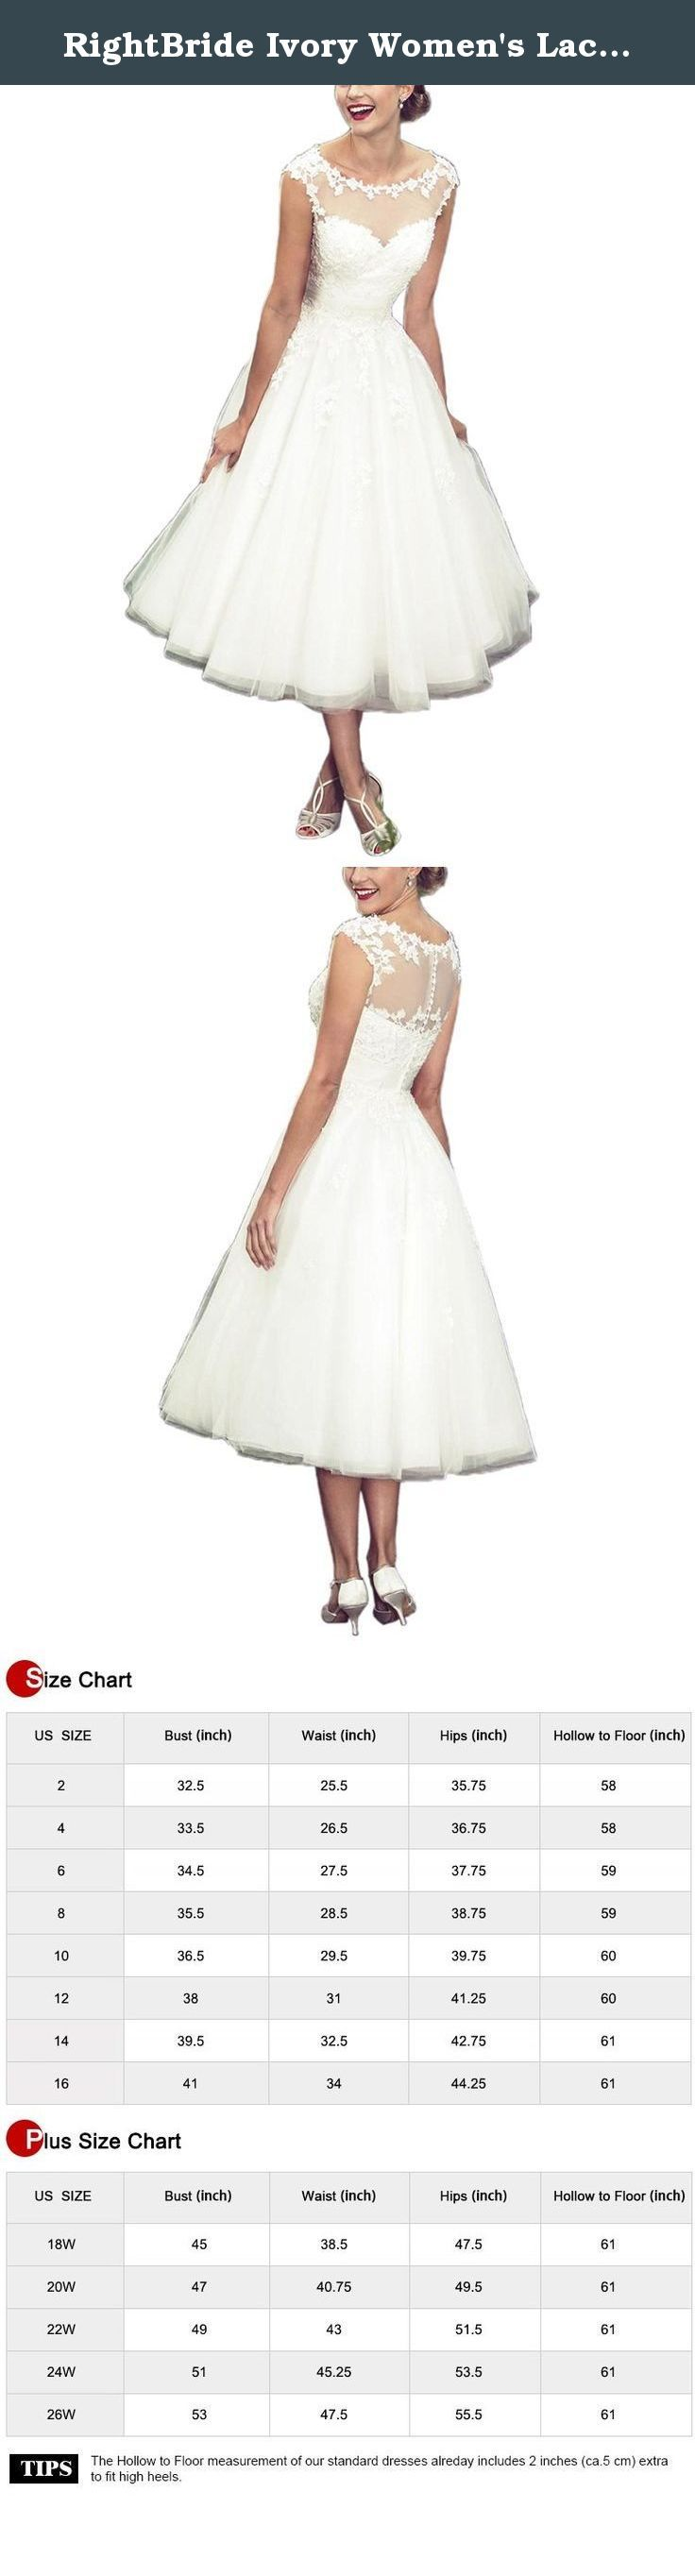 RightBride Ivory Women's Lace Country Western Short Beach Wedding Dresses for Bride 2017 (22W). RightBride Ivory Women's Lace Country Western Short Beach Wedding Dresses for Bride 2017 (22W) RightBride, Just as the store name indicates, is always dedicated to be the Right online shop on Amazon for wedding dresses for bride, So quality is our first priority. 1.With high quality fabrics, beads, pearls, crystals and threads, RightBride are always producing wedding dresses for bride and women...